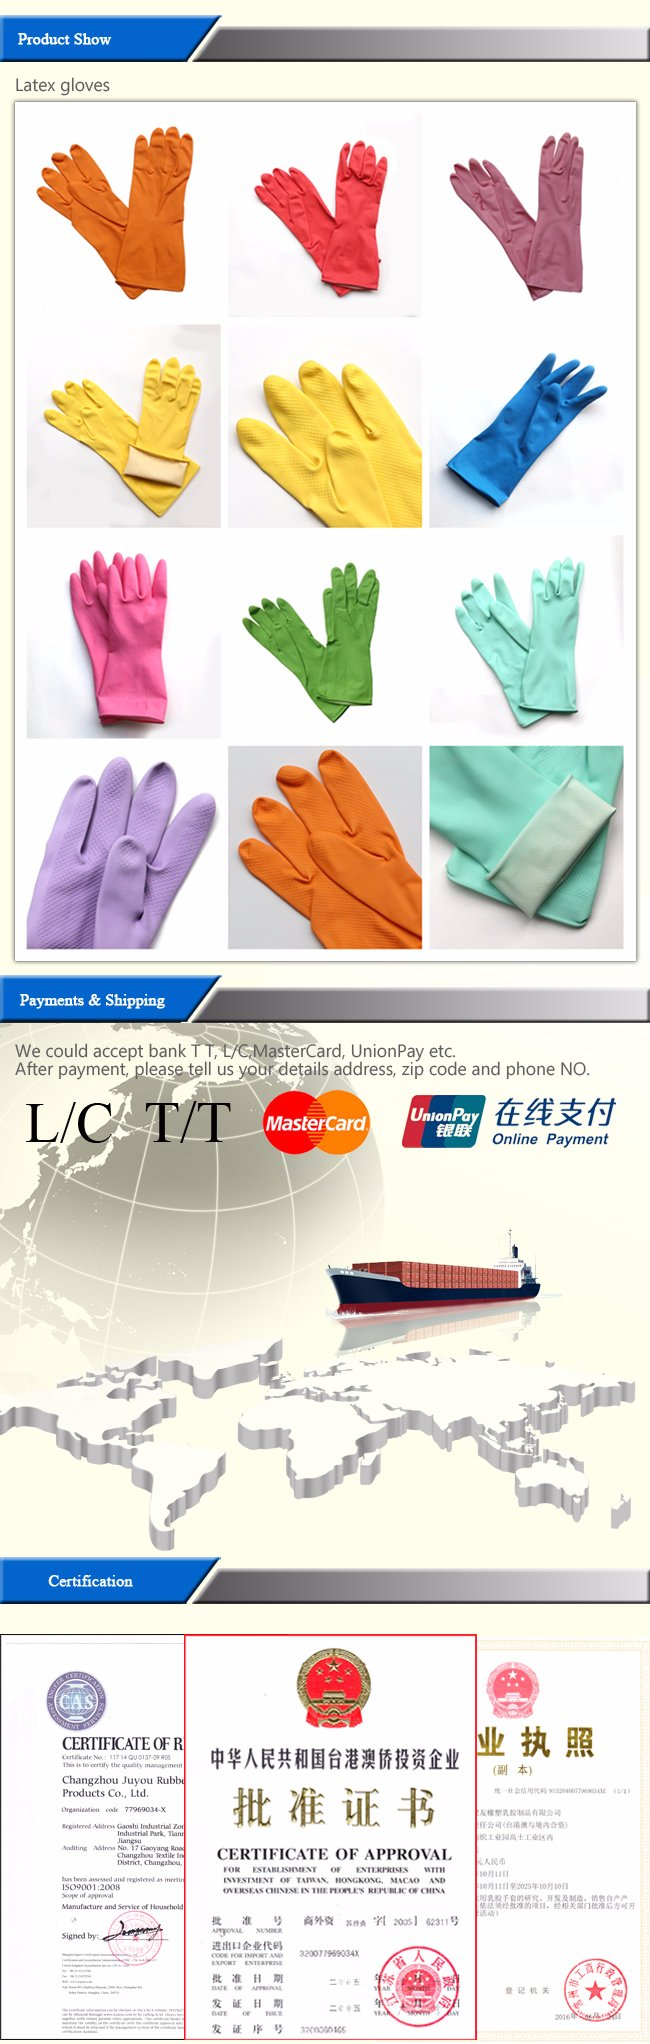 Latex Waterproof Working Gloves for Washing Stuff with High Quality